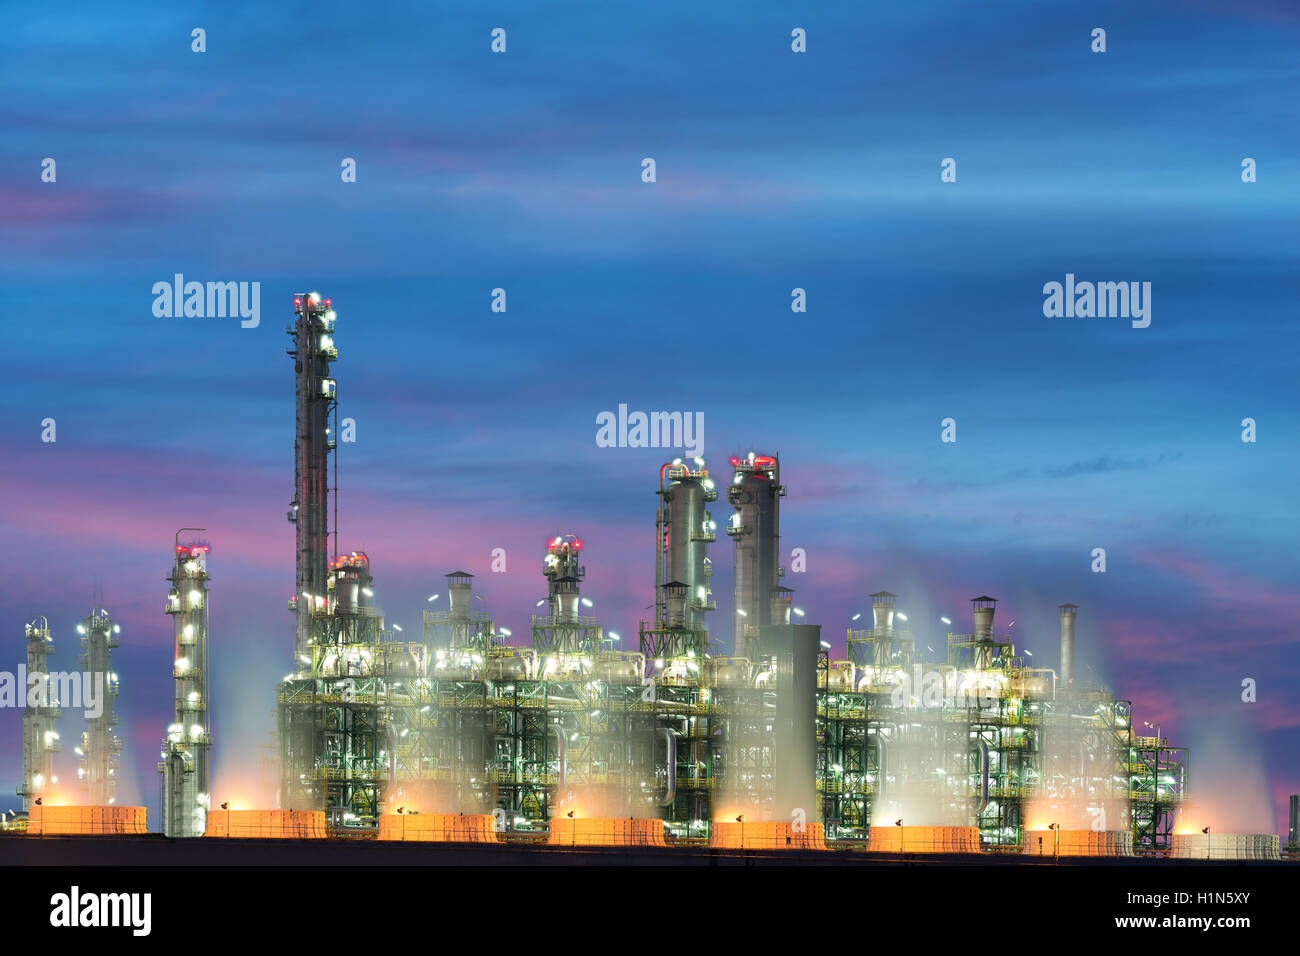 Landscape Boiler in stream power plant at night. Electricity power ...